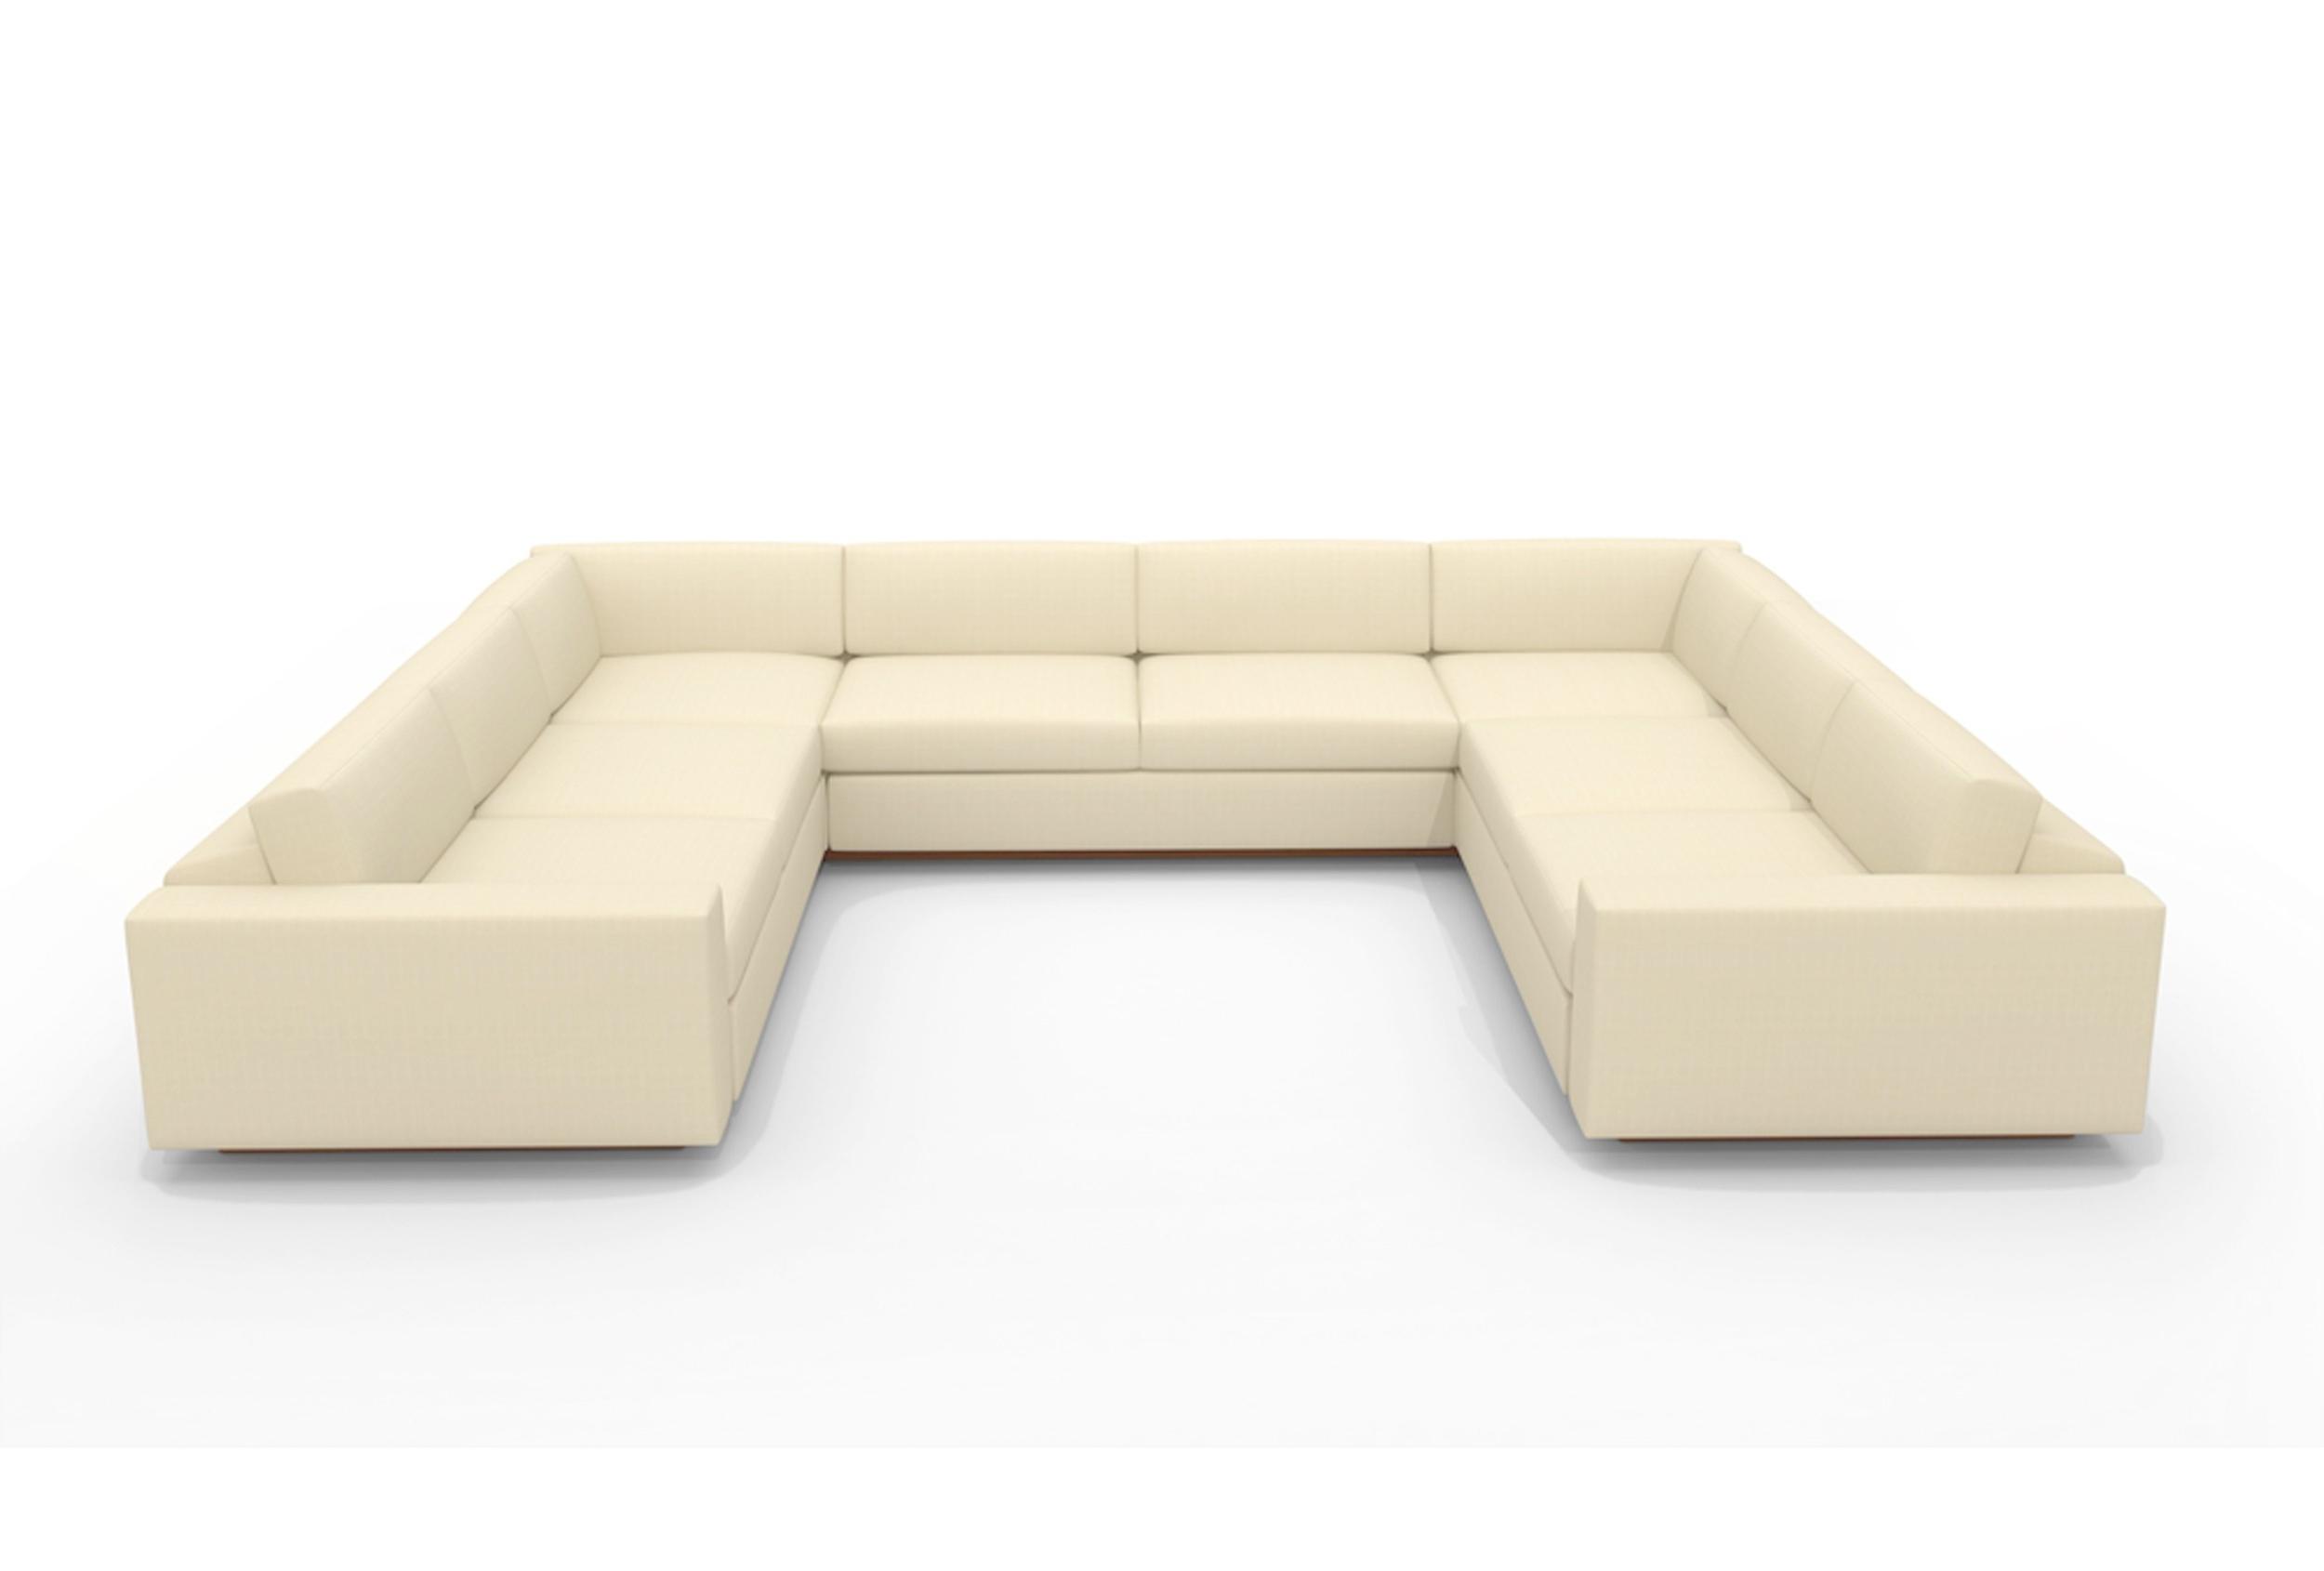 U Shaped White Leather Sectional Sofa With Back And Arm Of With Regard To Fashionable Modern U Shaped Sectional Sofas (View 12 of 20)